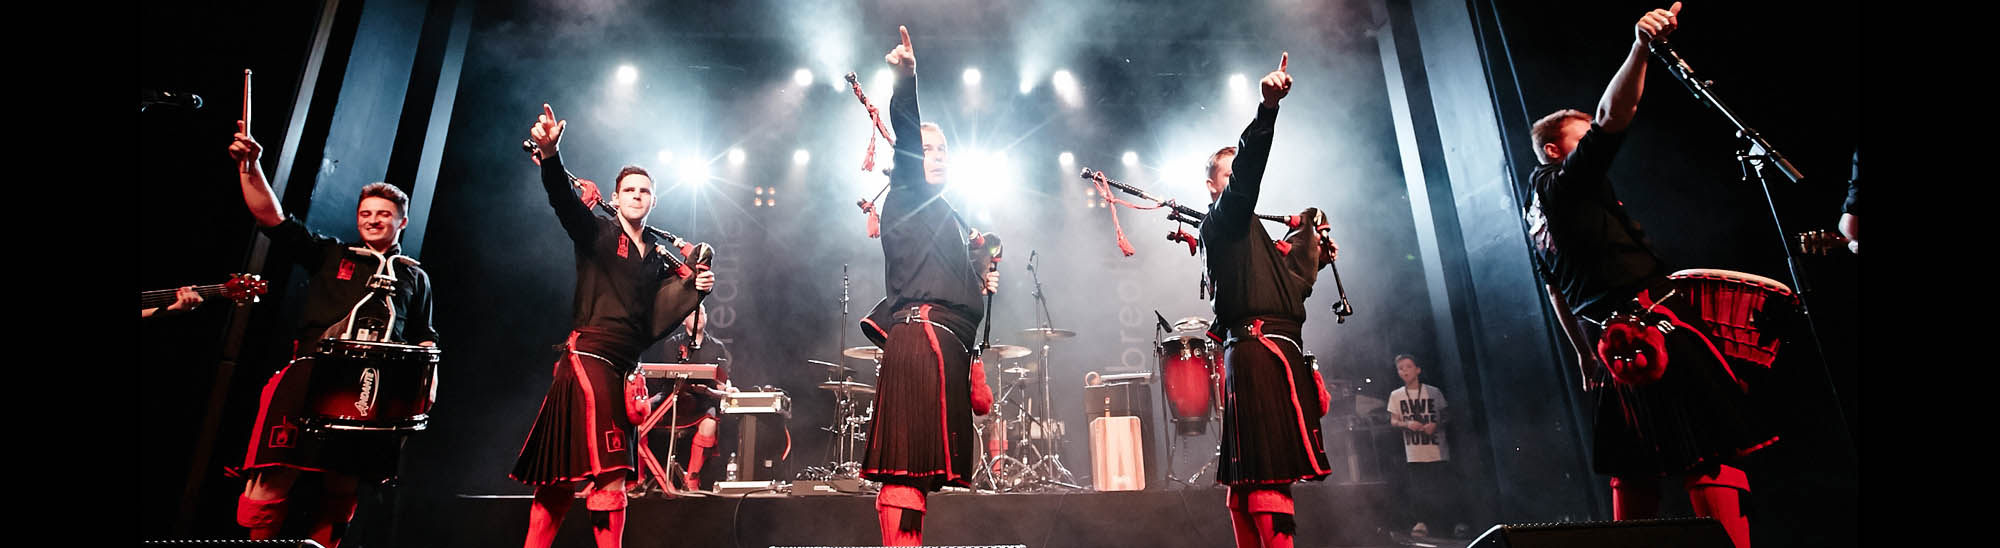 the-red-hot-chilli-pipers